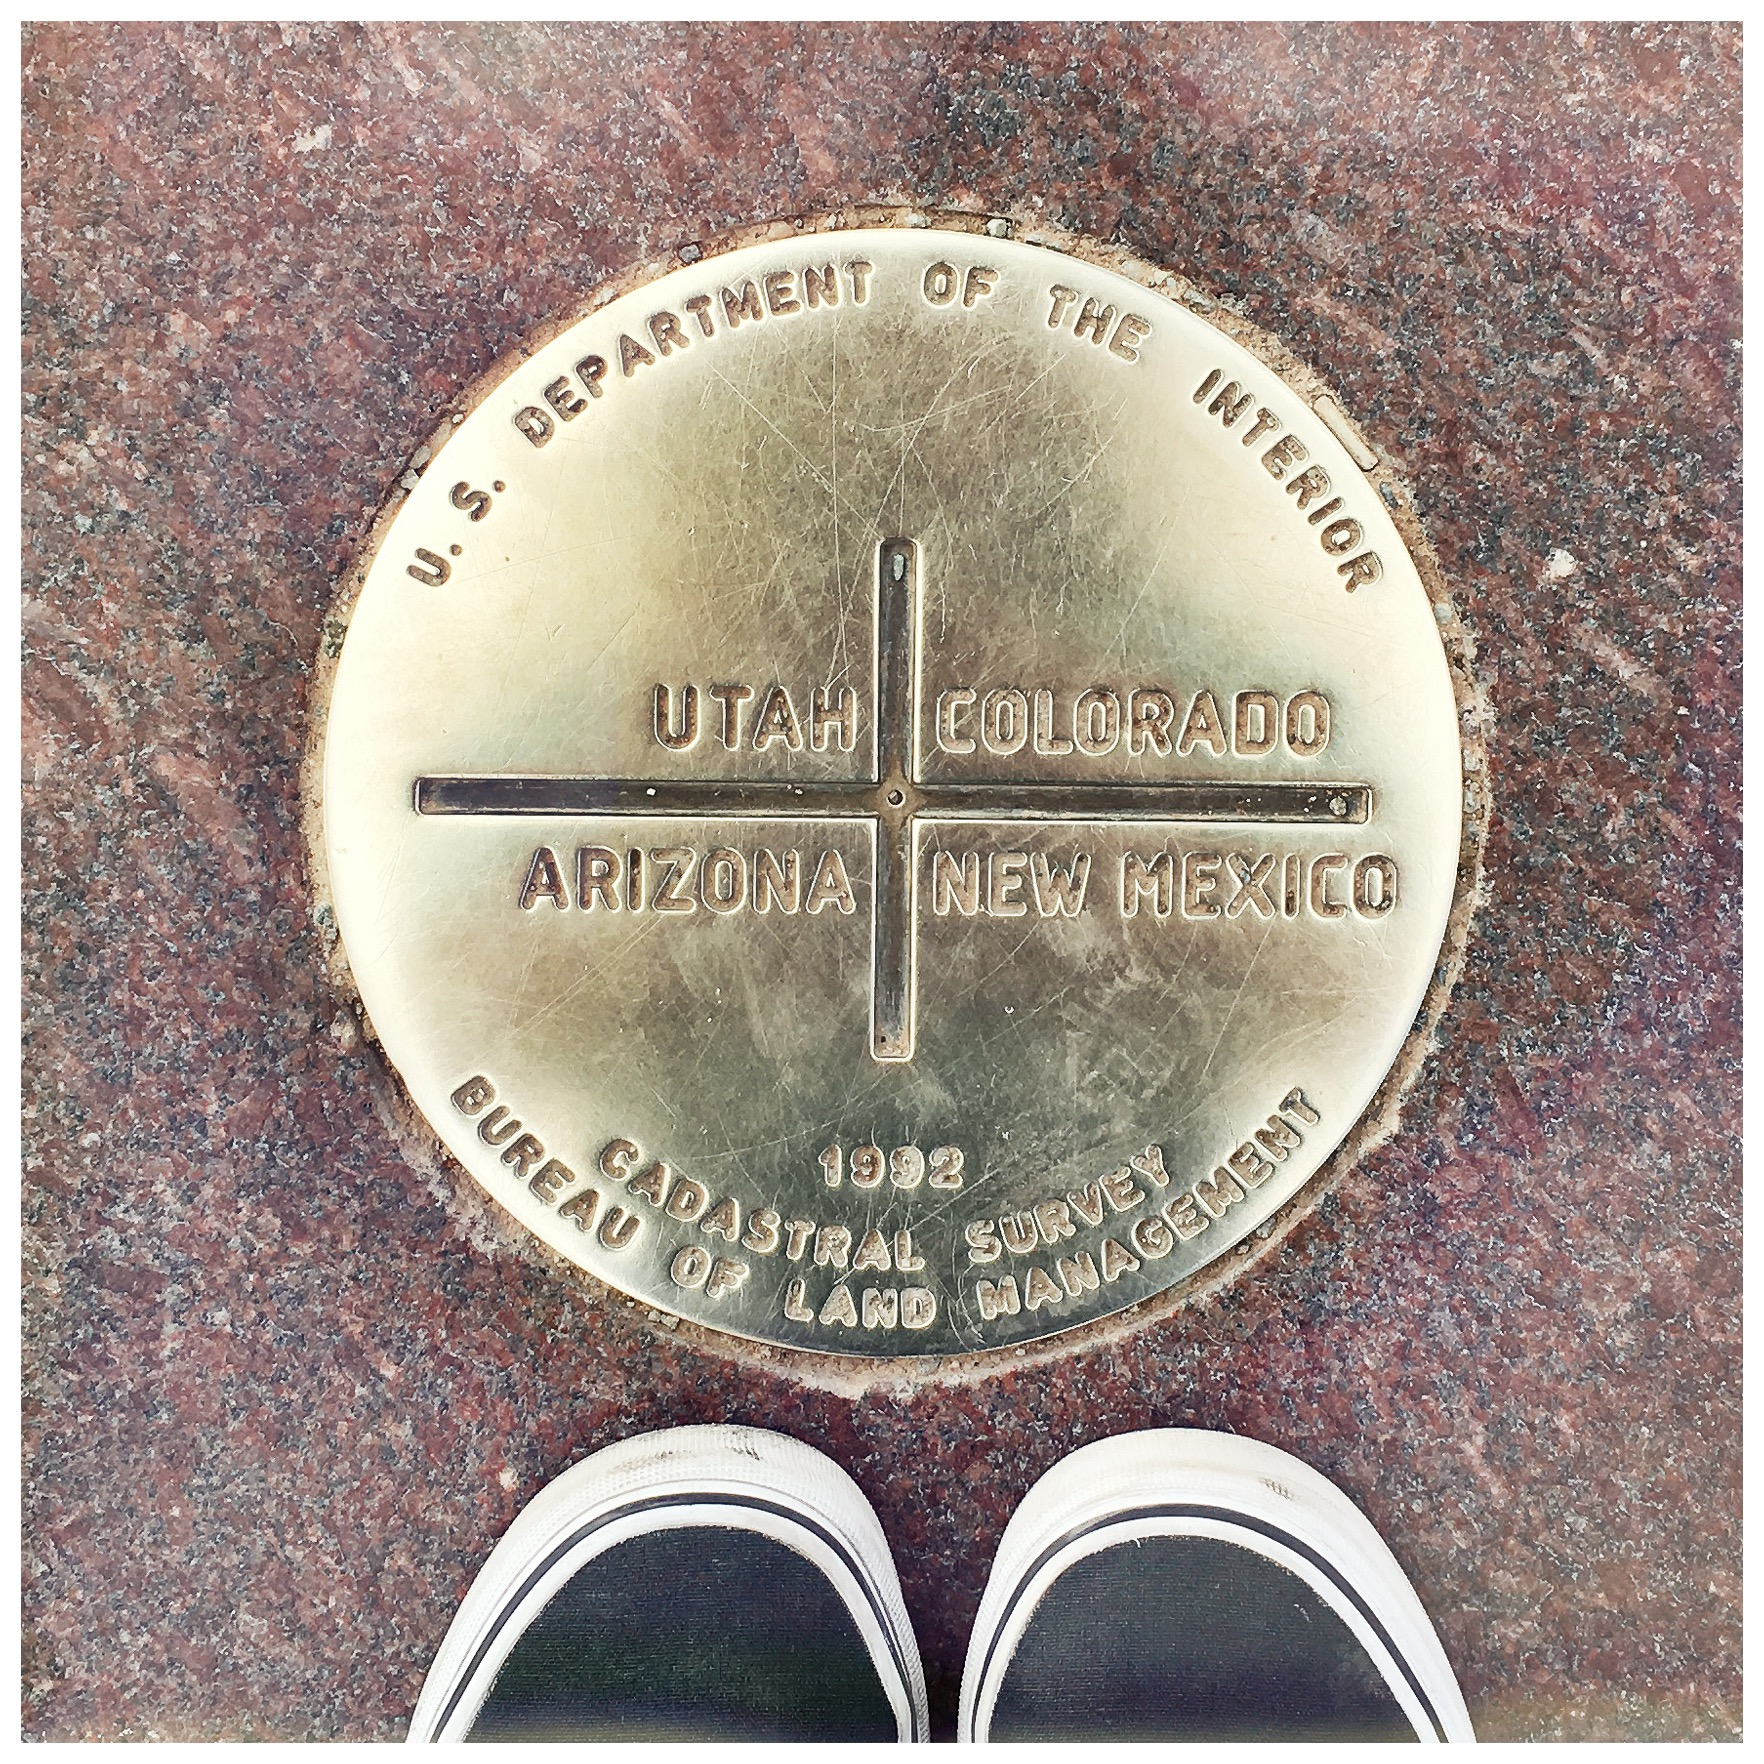 Smaller than my feet - The Four Corners Monument itself.